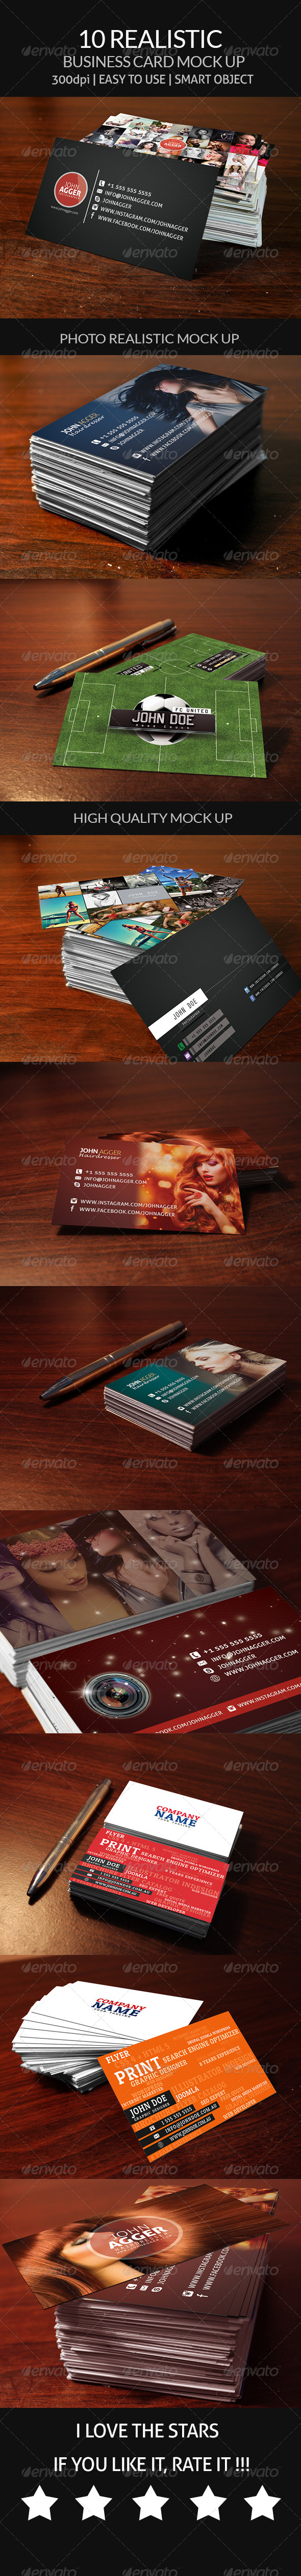 GraphicRiver 10 Realistic Business Card Mock Up 8043746